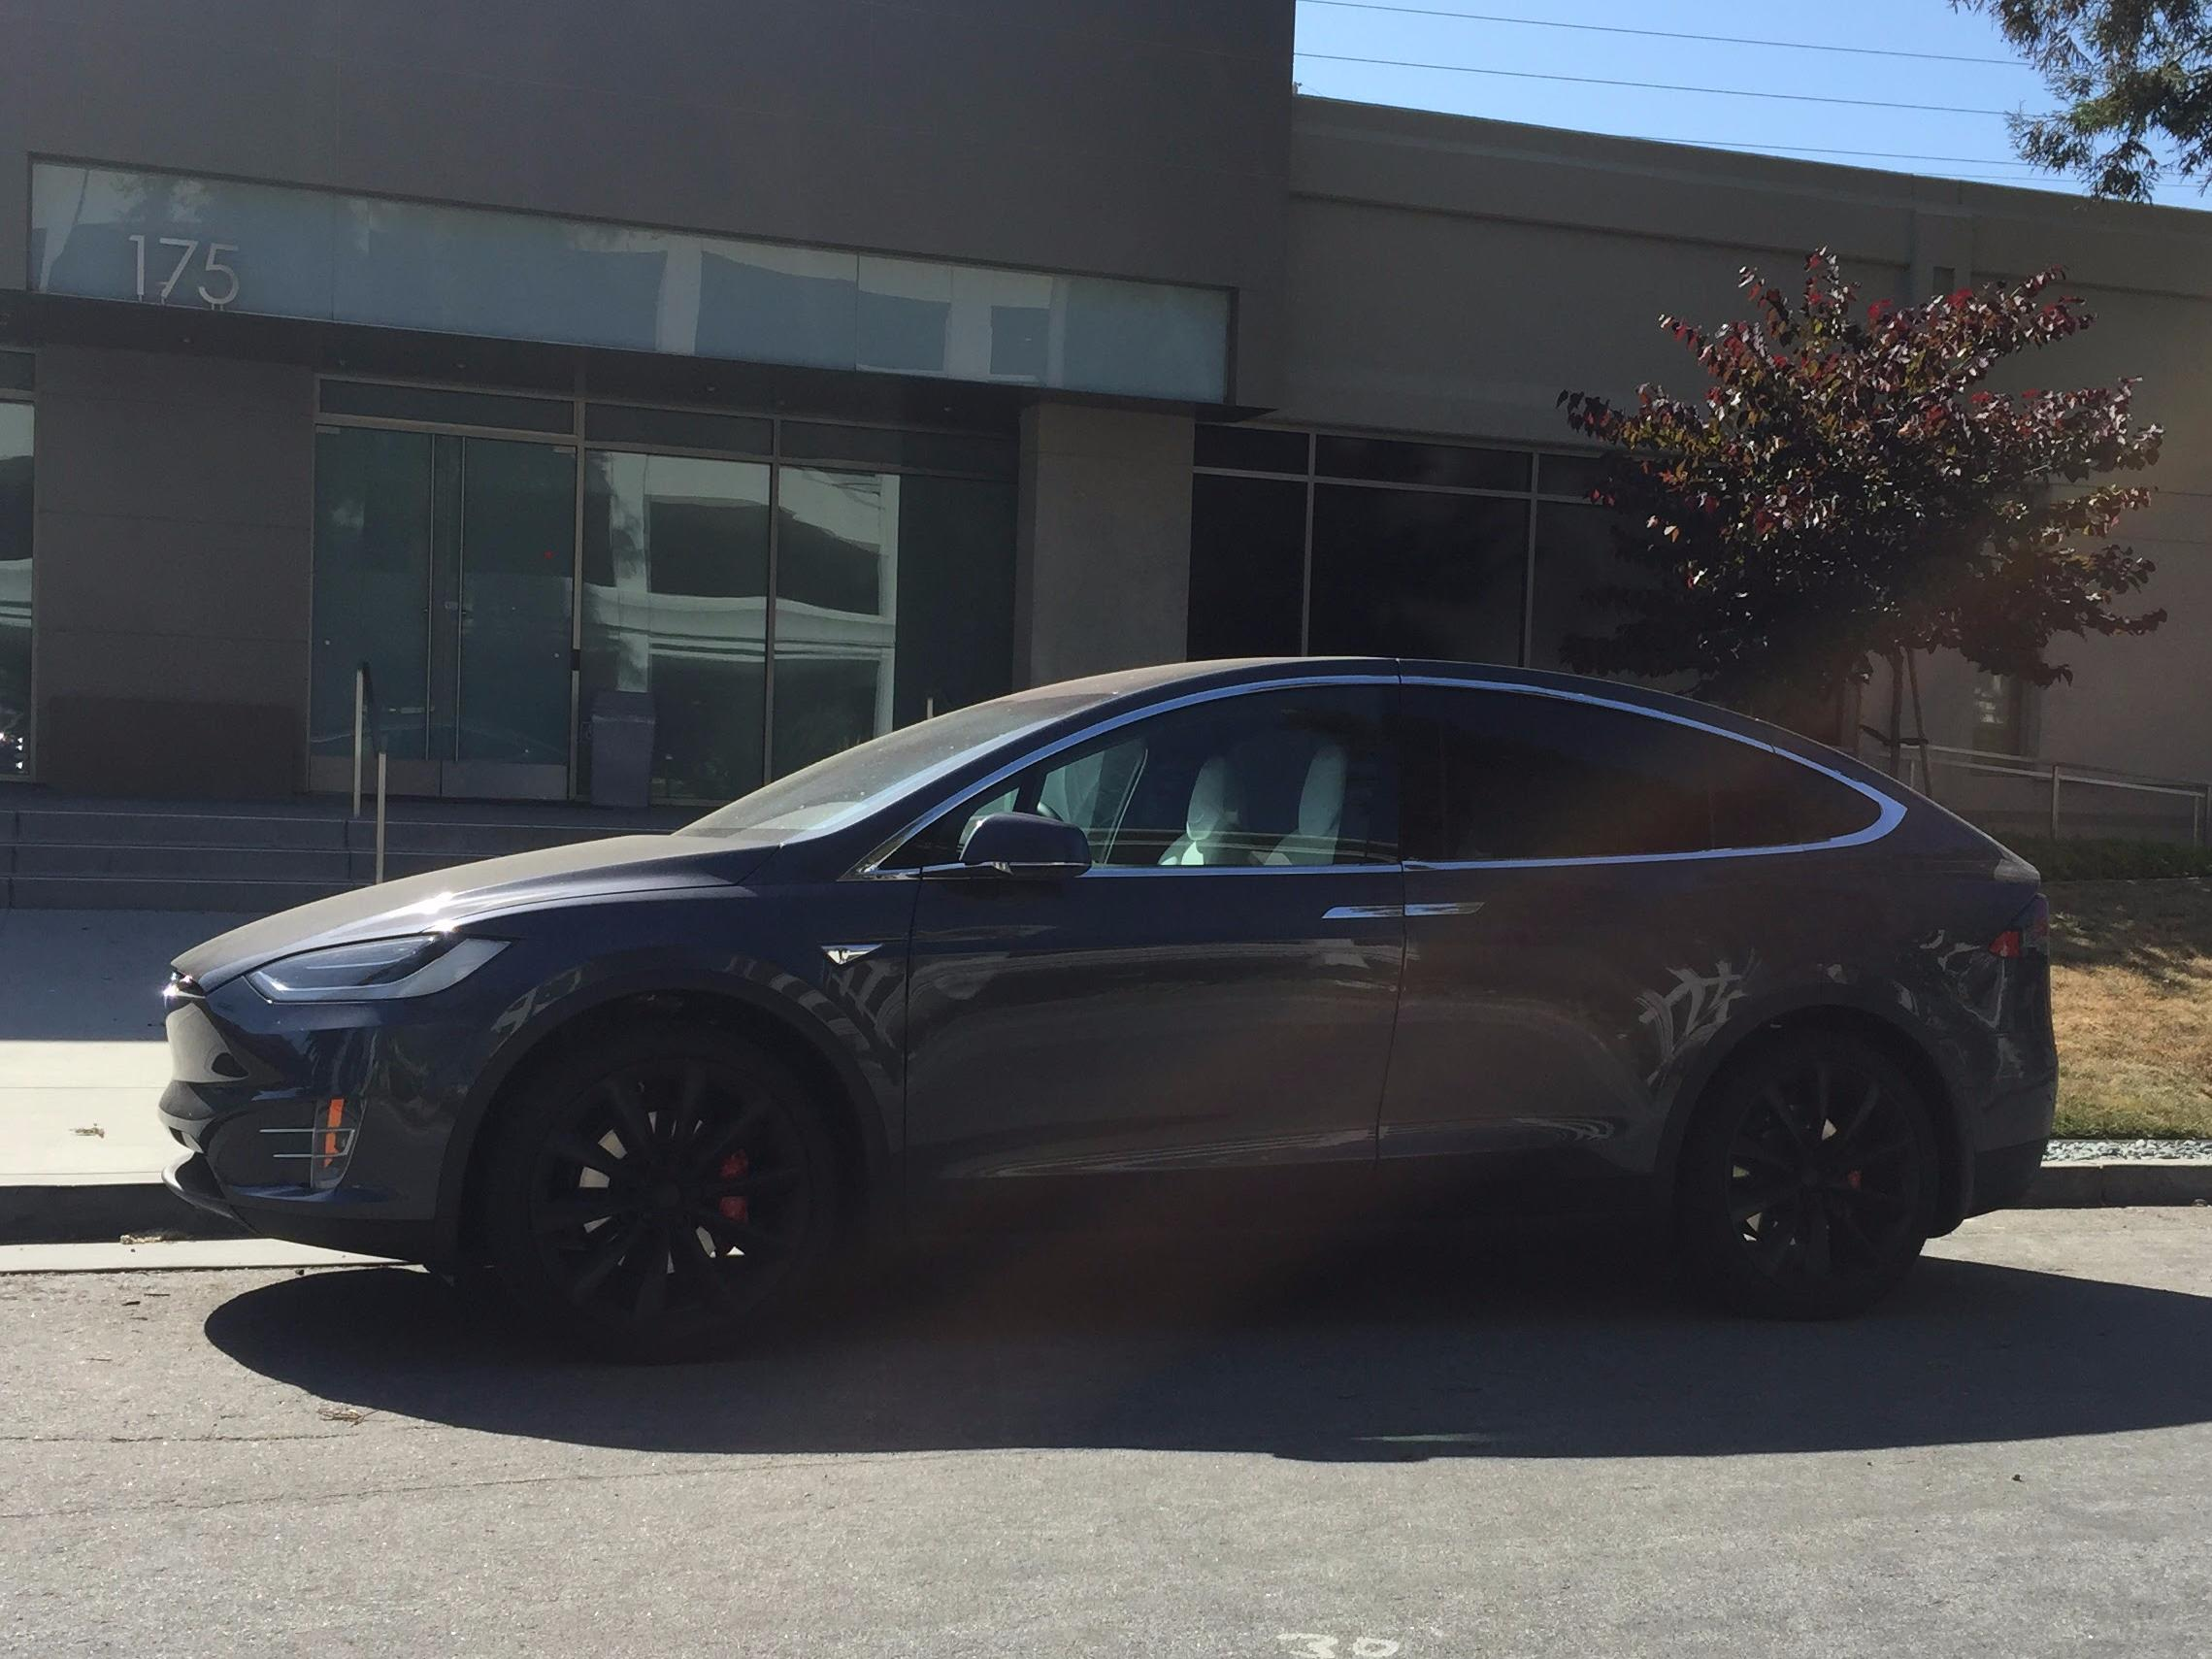 We saw these brand new Tesla Model Xs parked outside Apple's secret car office